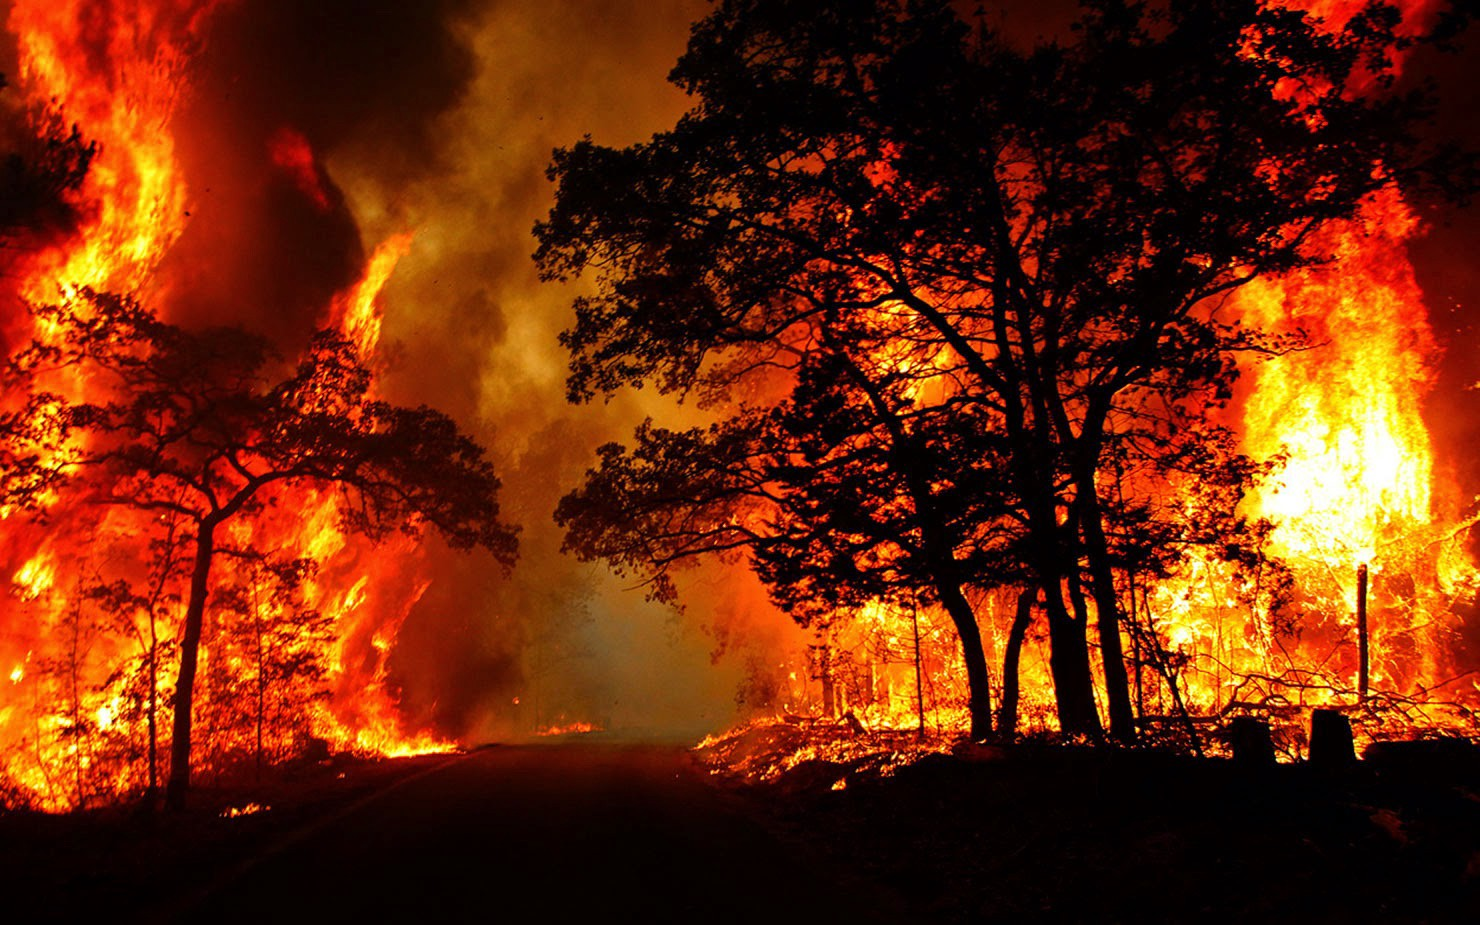 The Most Catastrophic Fires in History